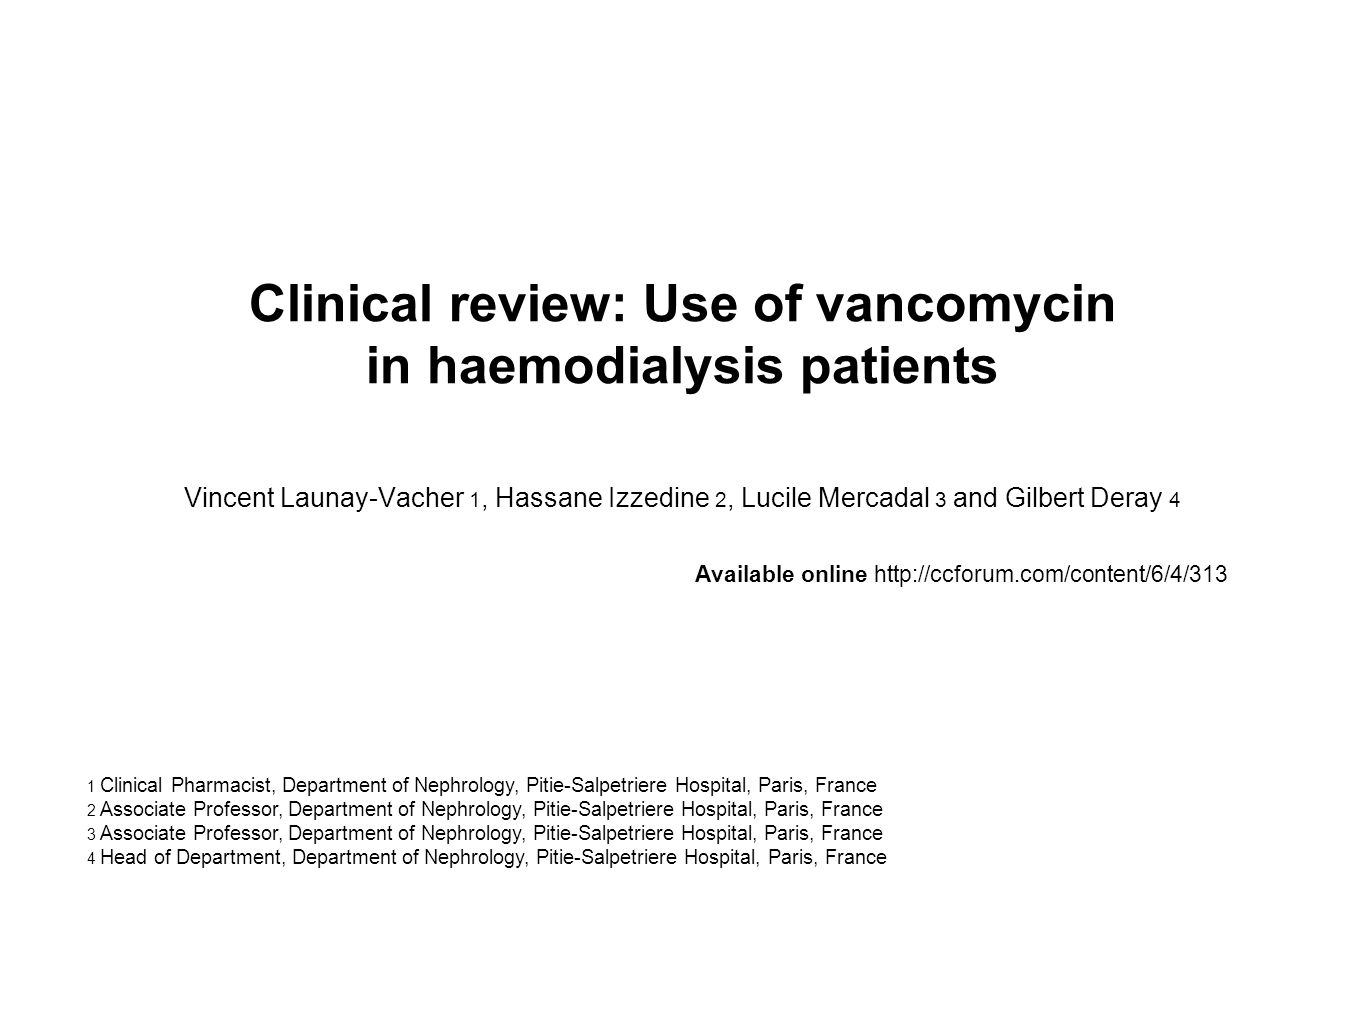 Clinical review: Use of vancomycin in haemodialysis patients Vincent Launay-Vacher 1, Hassane Izzedine 2, Lucile Mercadal 3 and Gilbert Deray 4 Available online http://ccforum.com/content/6/4/313 1 Clinical Pharmacist, Department of Nephrology, Pitie-Salpetriere Hospital, Paris, France 2 Associate Professor, Department of Nephrology, Pitie-Salpetriere Hospital, Paris, France 3 Associate Professor, Department of Nephrology, Pitie-Salpetriere Hospital, Paris, France 4 Head of Department, Department of Nephrology, Pitie-Salpetriere Hospital, Paris, France